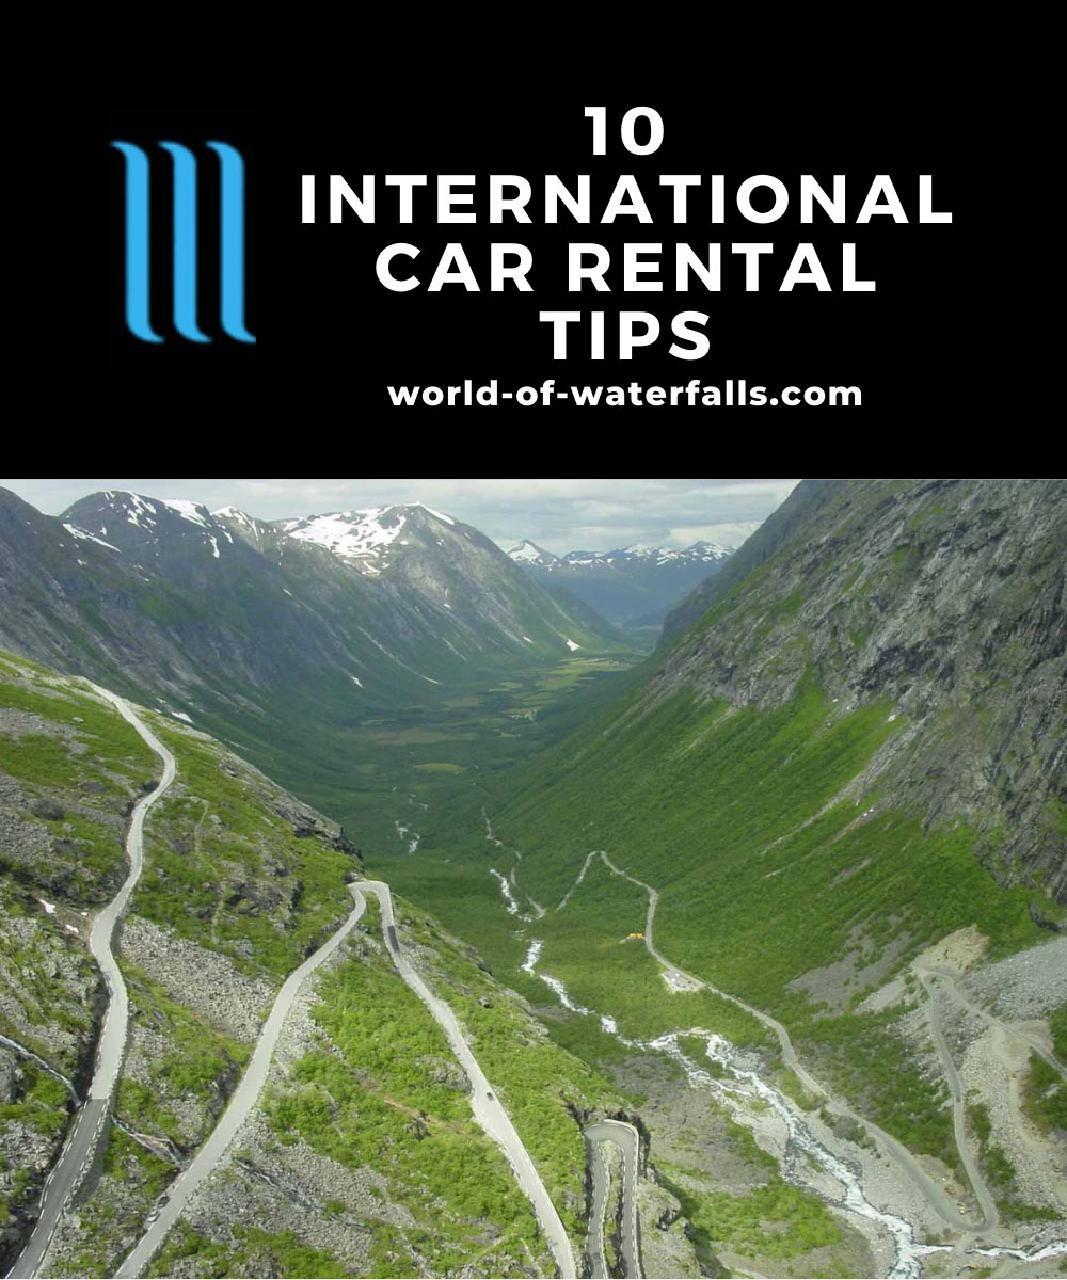 The serpentine road Trollstigen (The Troll Ladder), one of our most memorable driving experiences given its hair-raising steep climb, switchbacks, and narrowness as well as breathtaking scenery